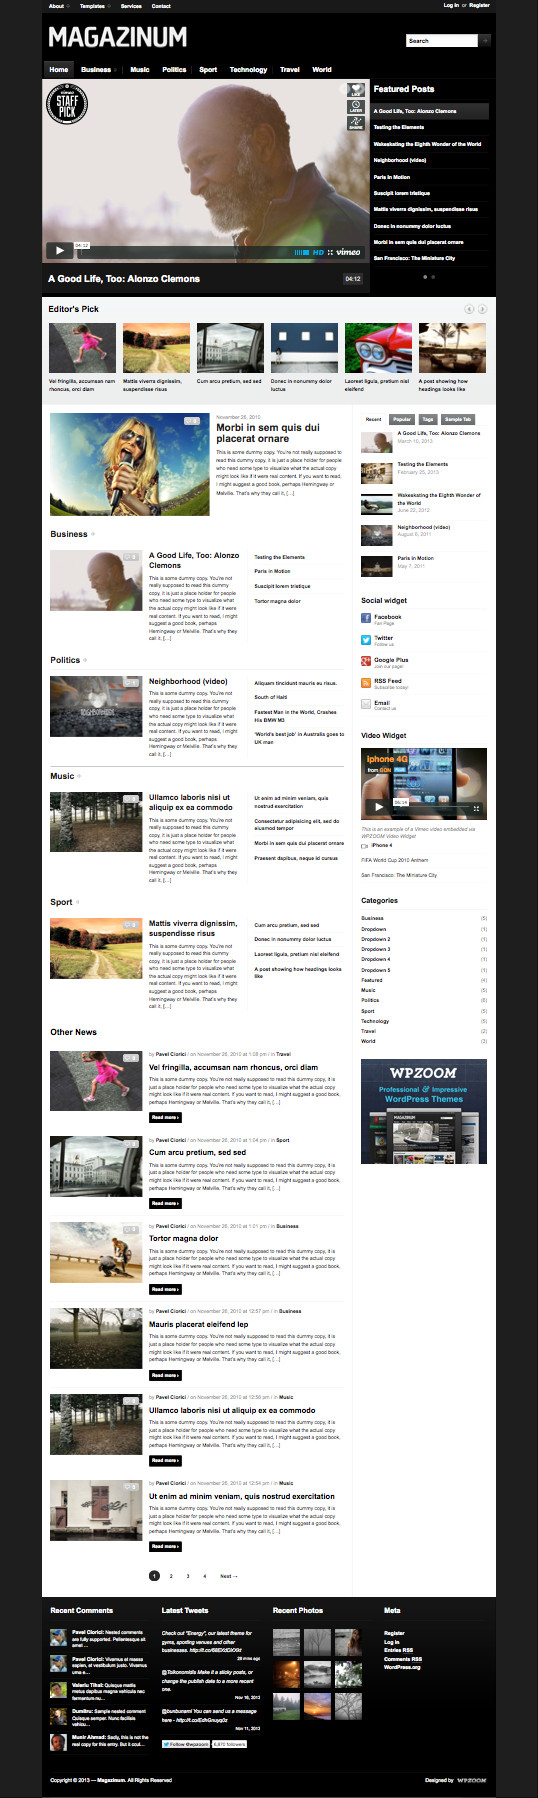 Magazinum 3.0 WordPress Theme